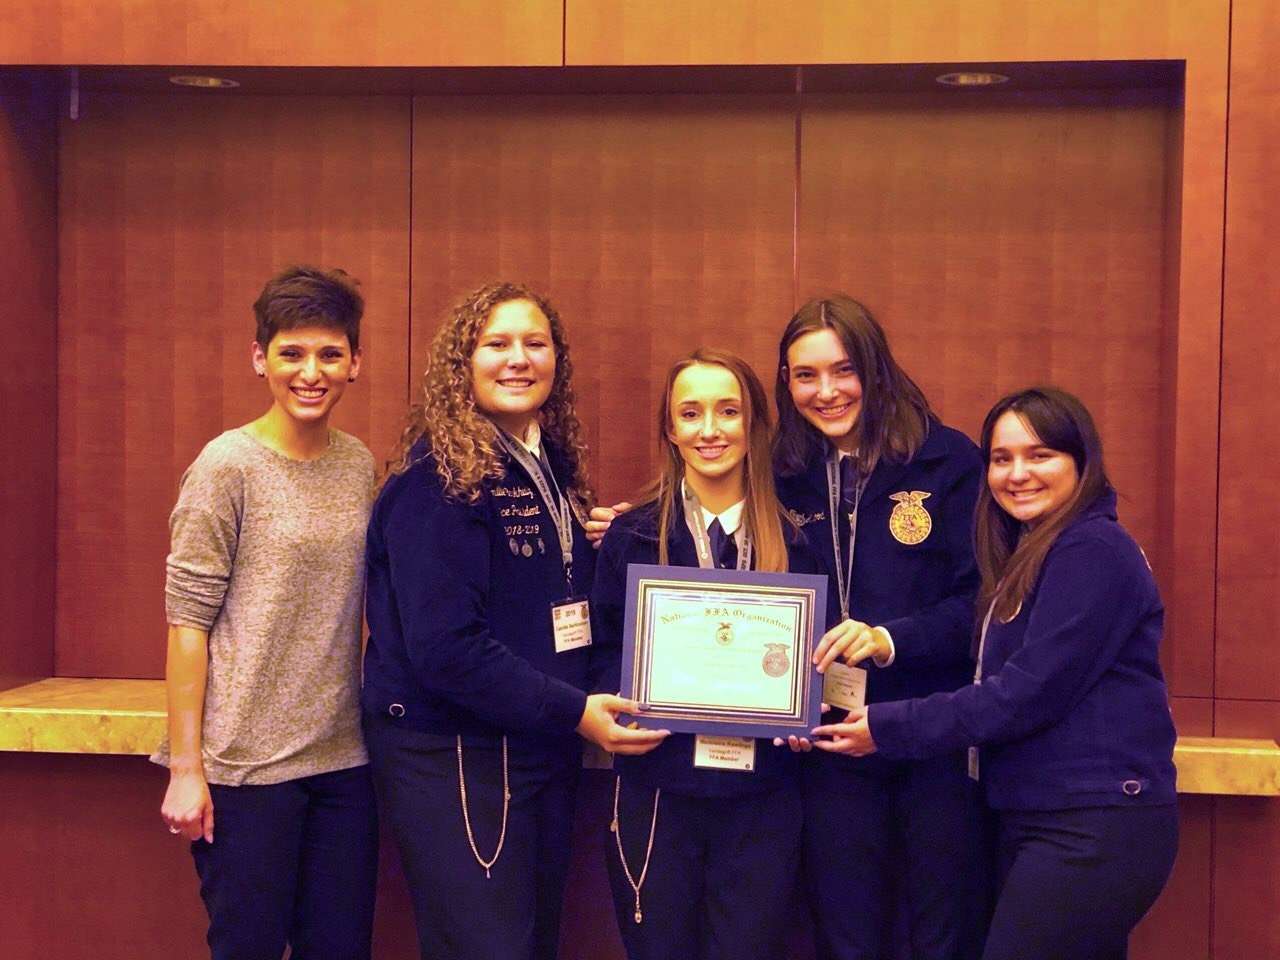 (Left to Right) Magan Escamilla, Camille Barkhuizen, Madeleine Rawlings, Noel Attwood and Tori Botello posing with their award.